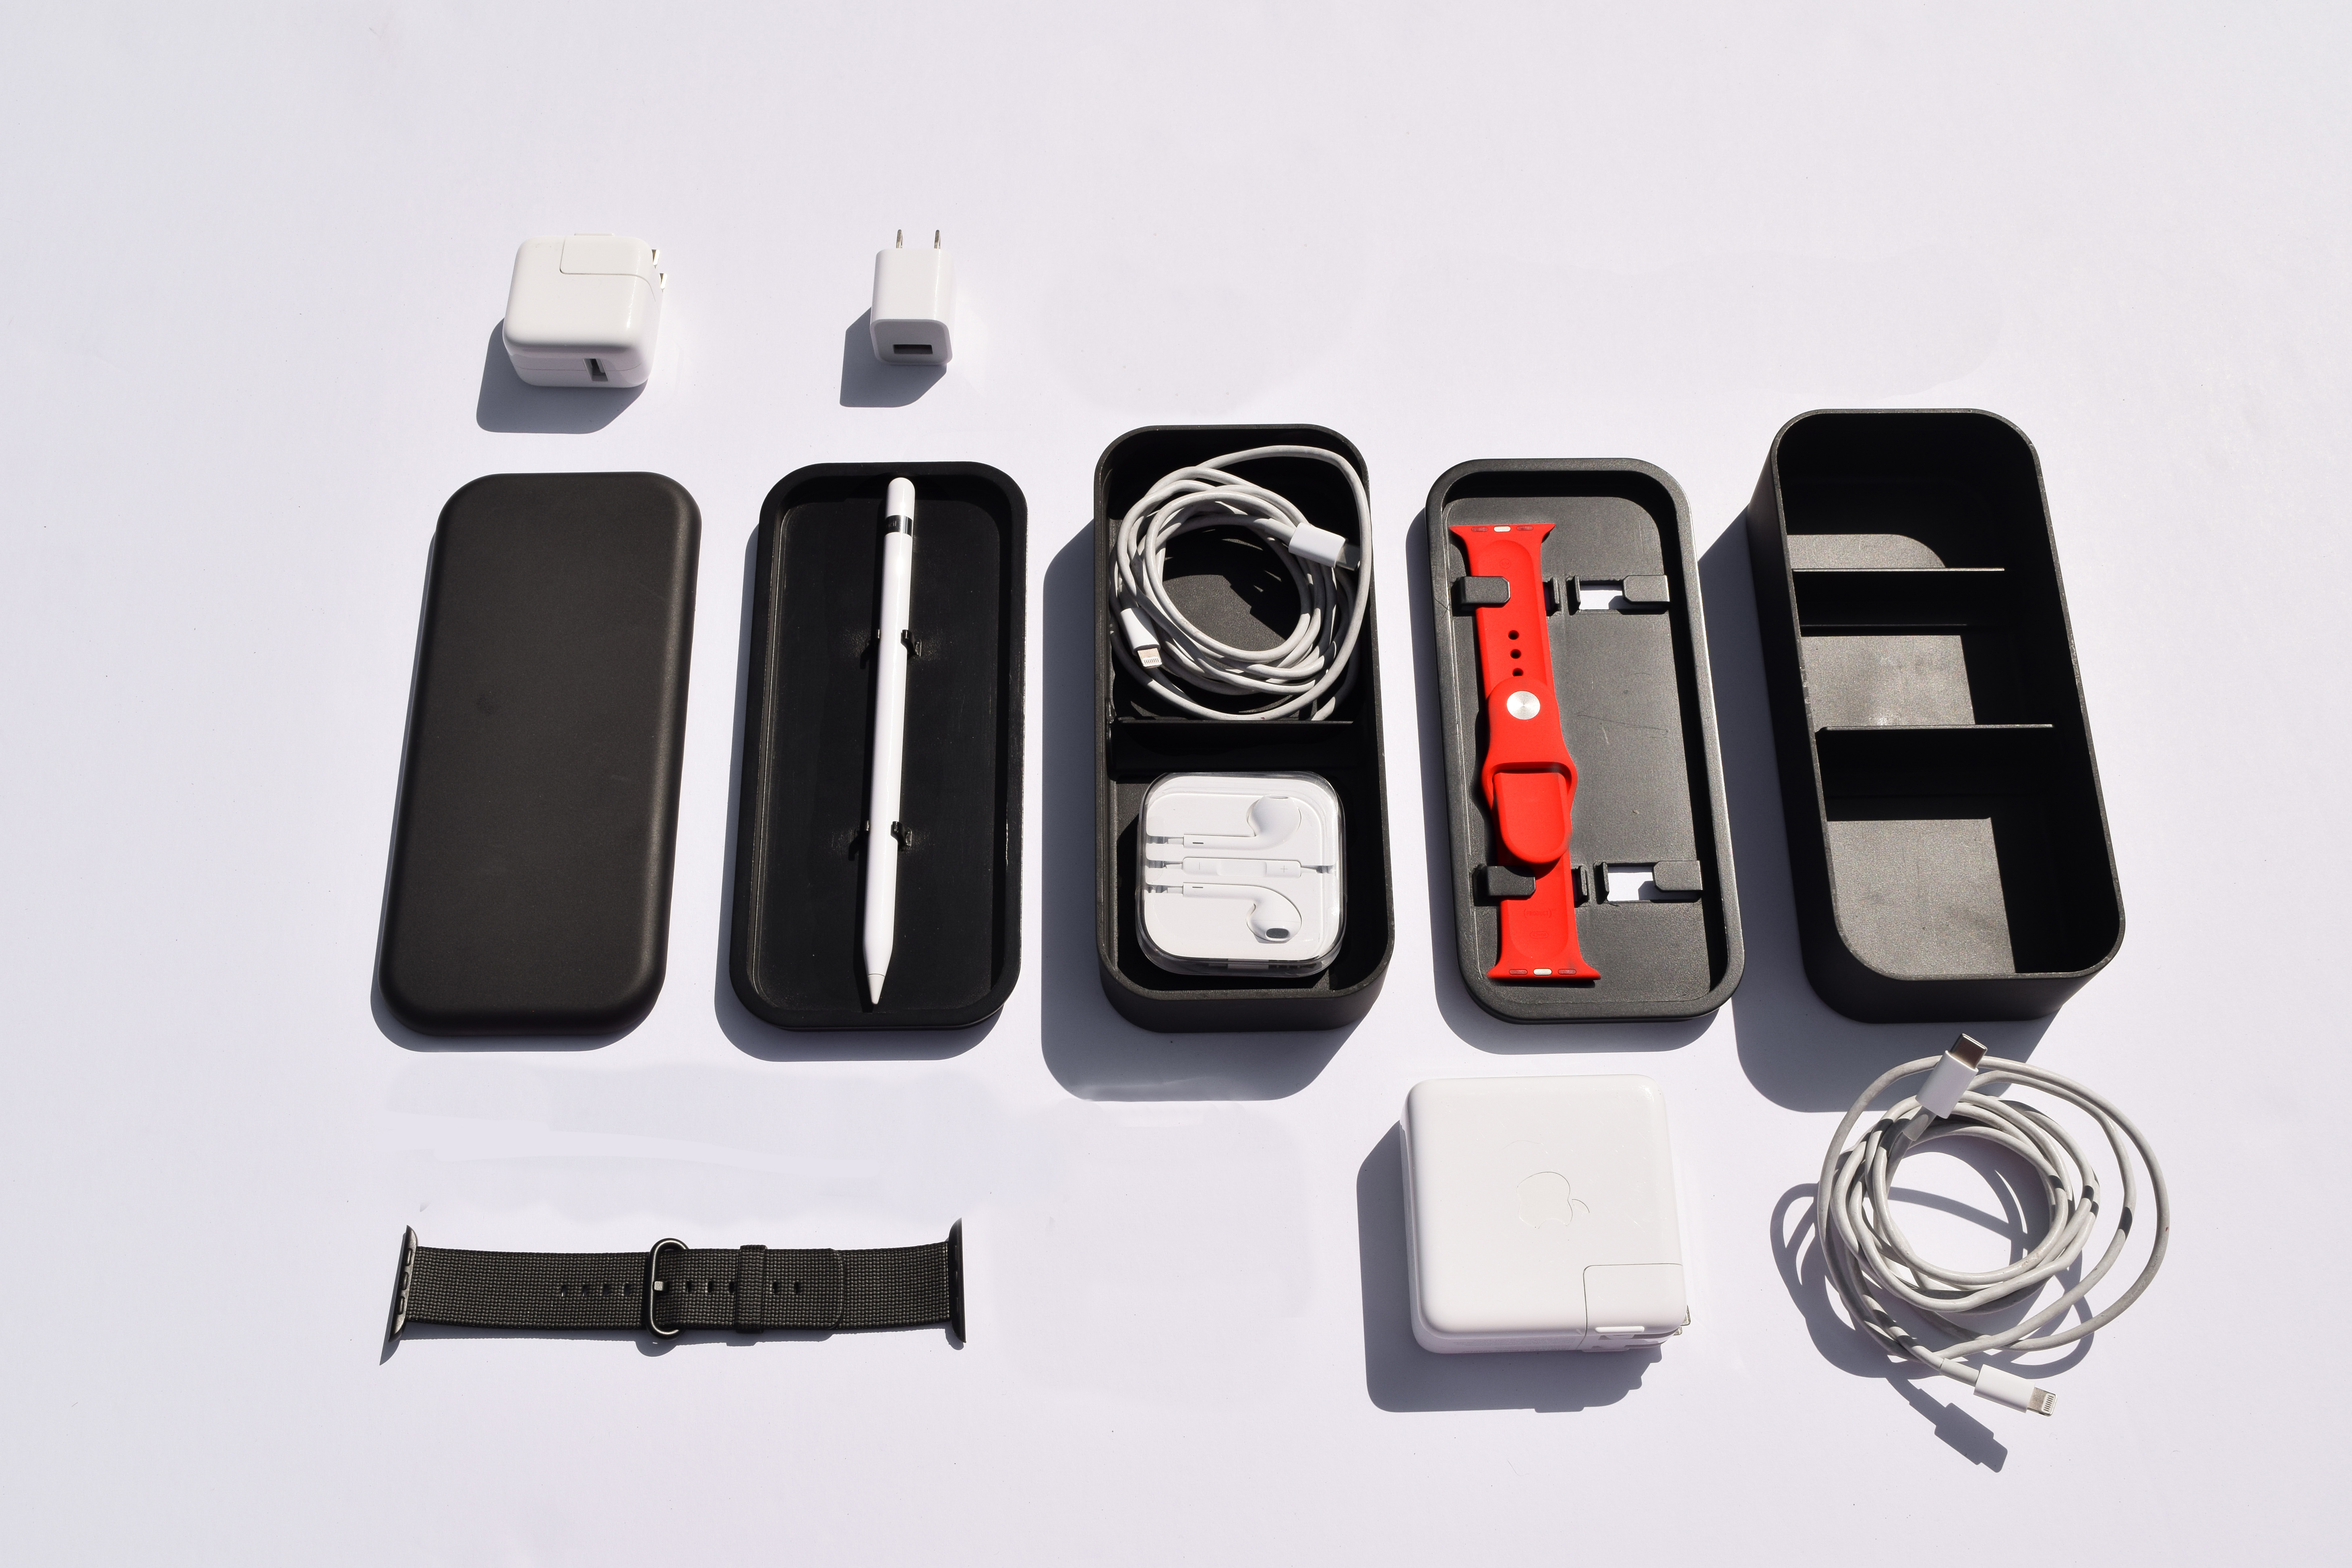 promo code 09a88 0a53c copy-of-f101bentostack launch4.jpg